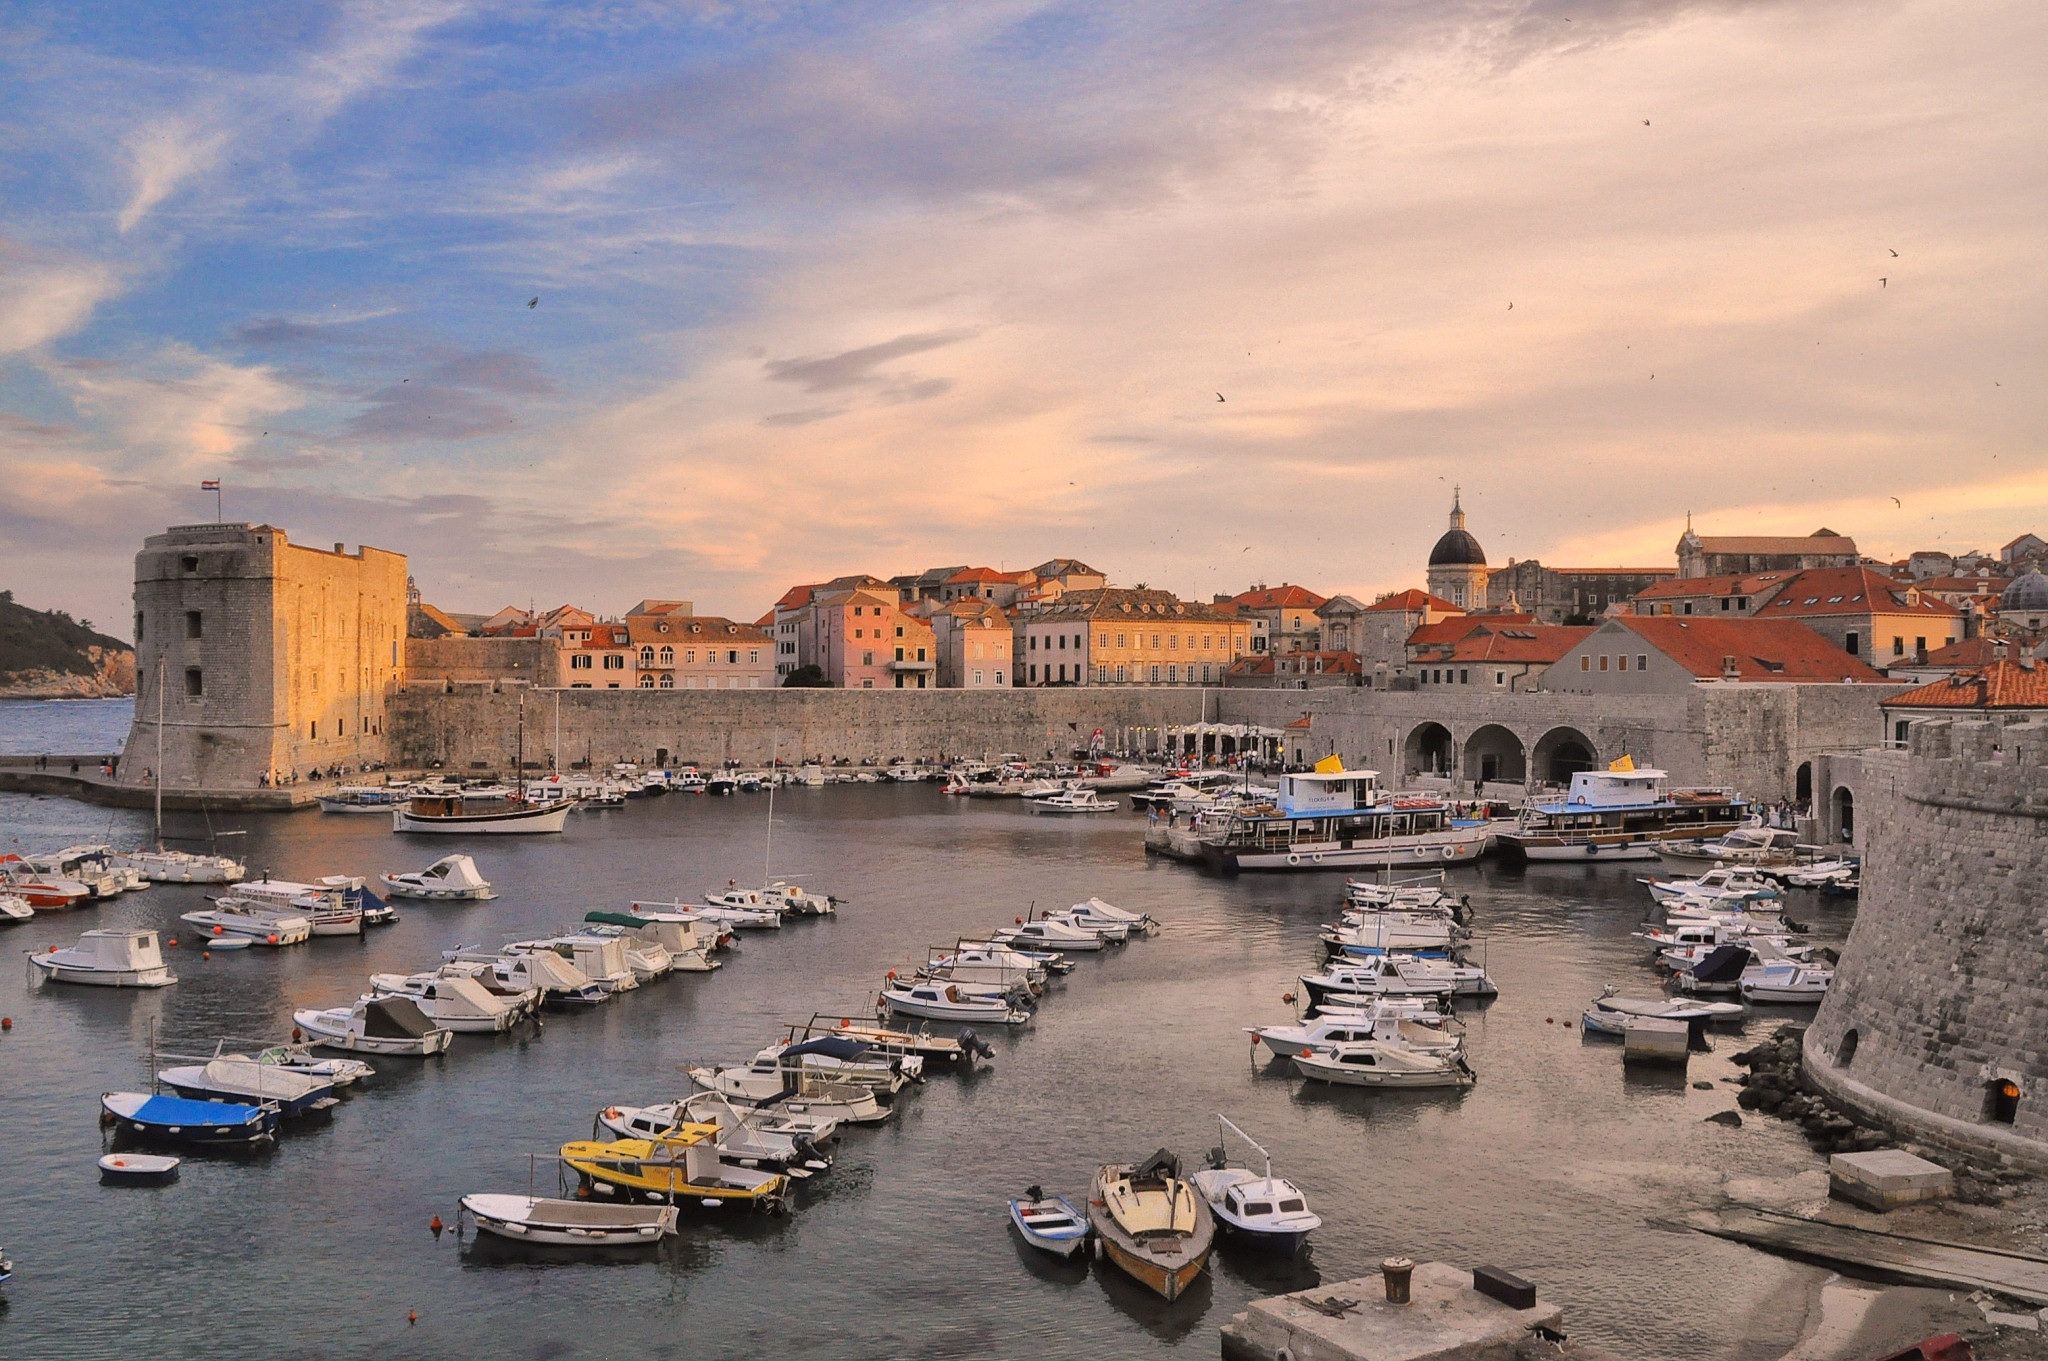 City harbor and St John's Fortress in Dubrovnik Croatia